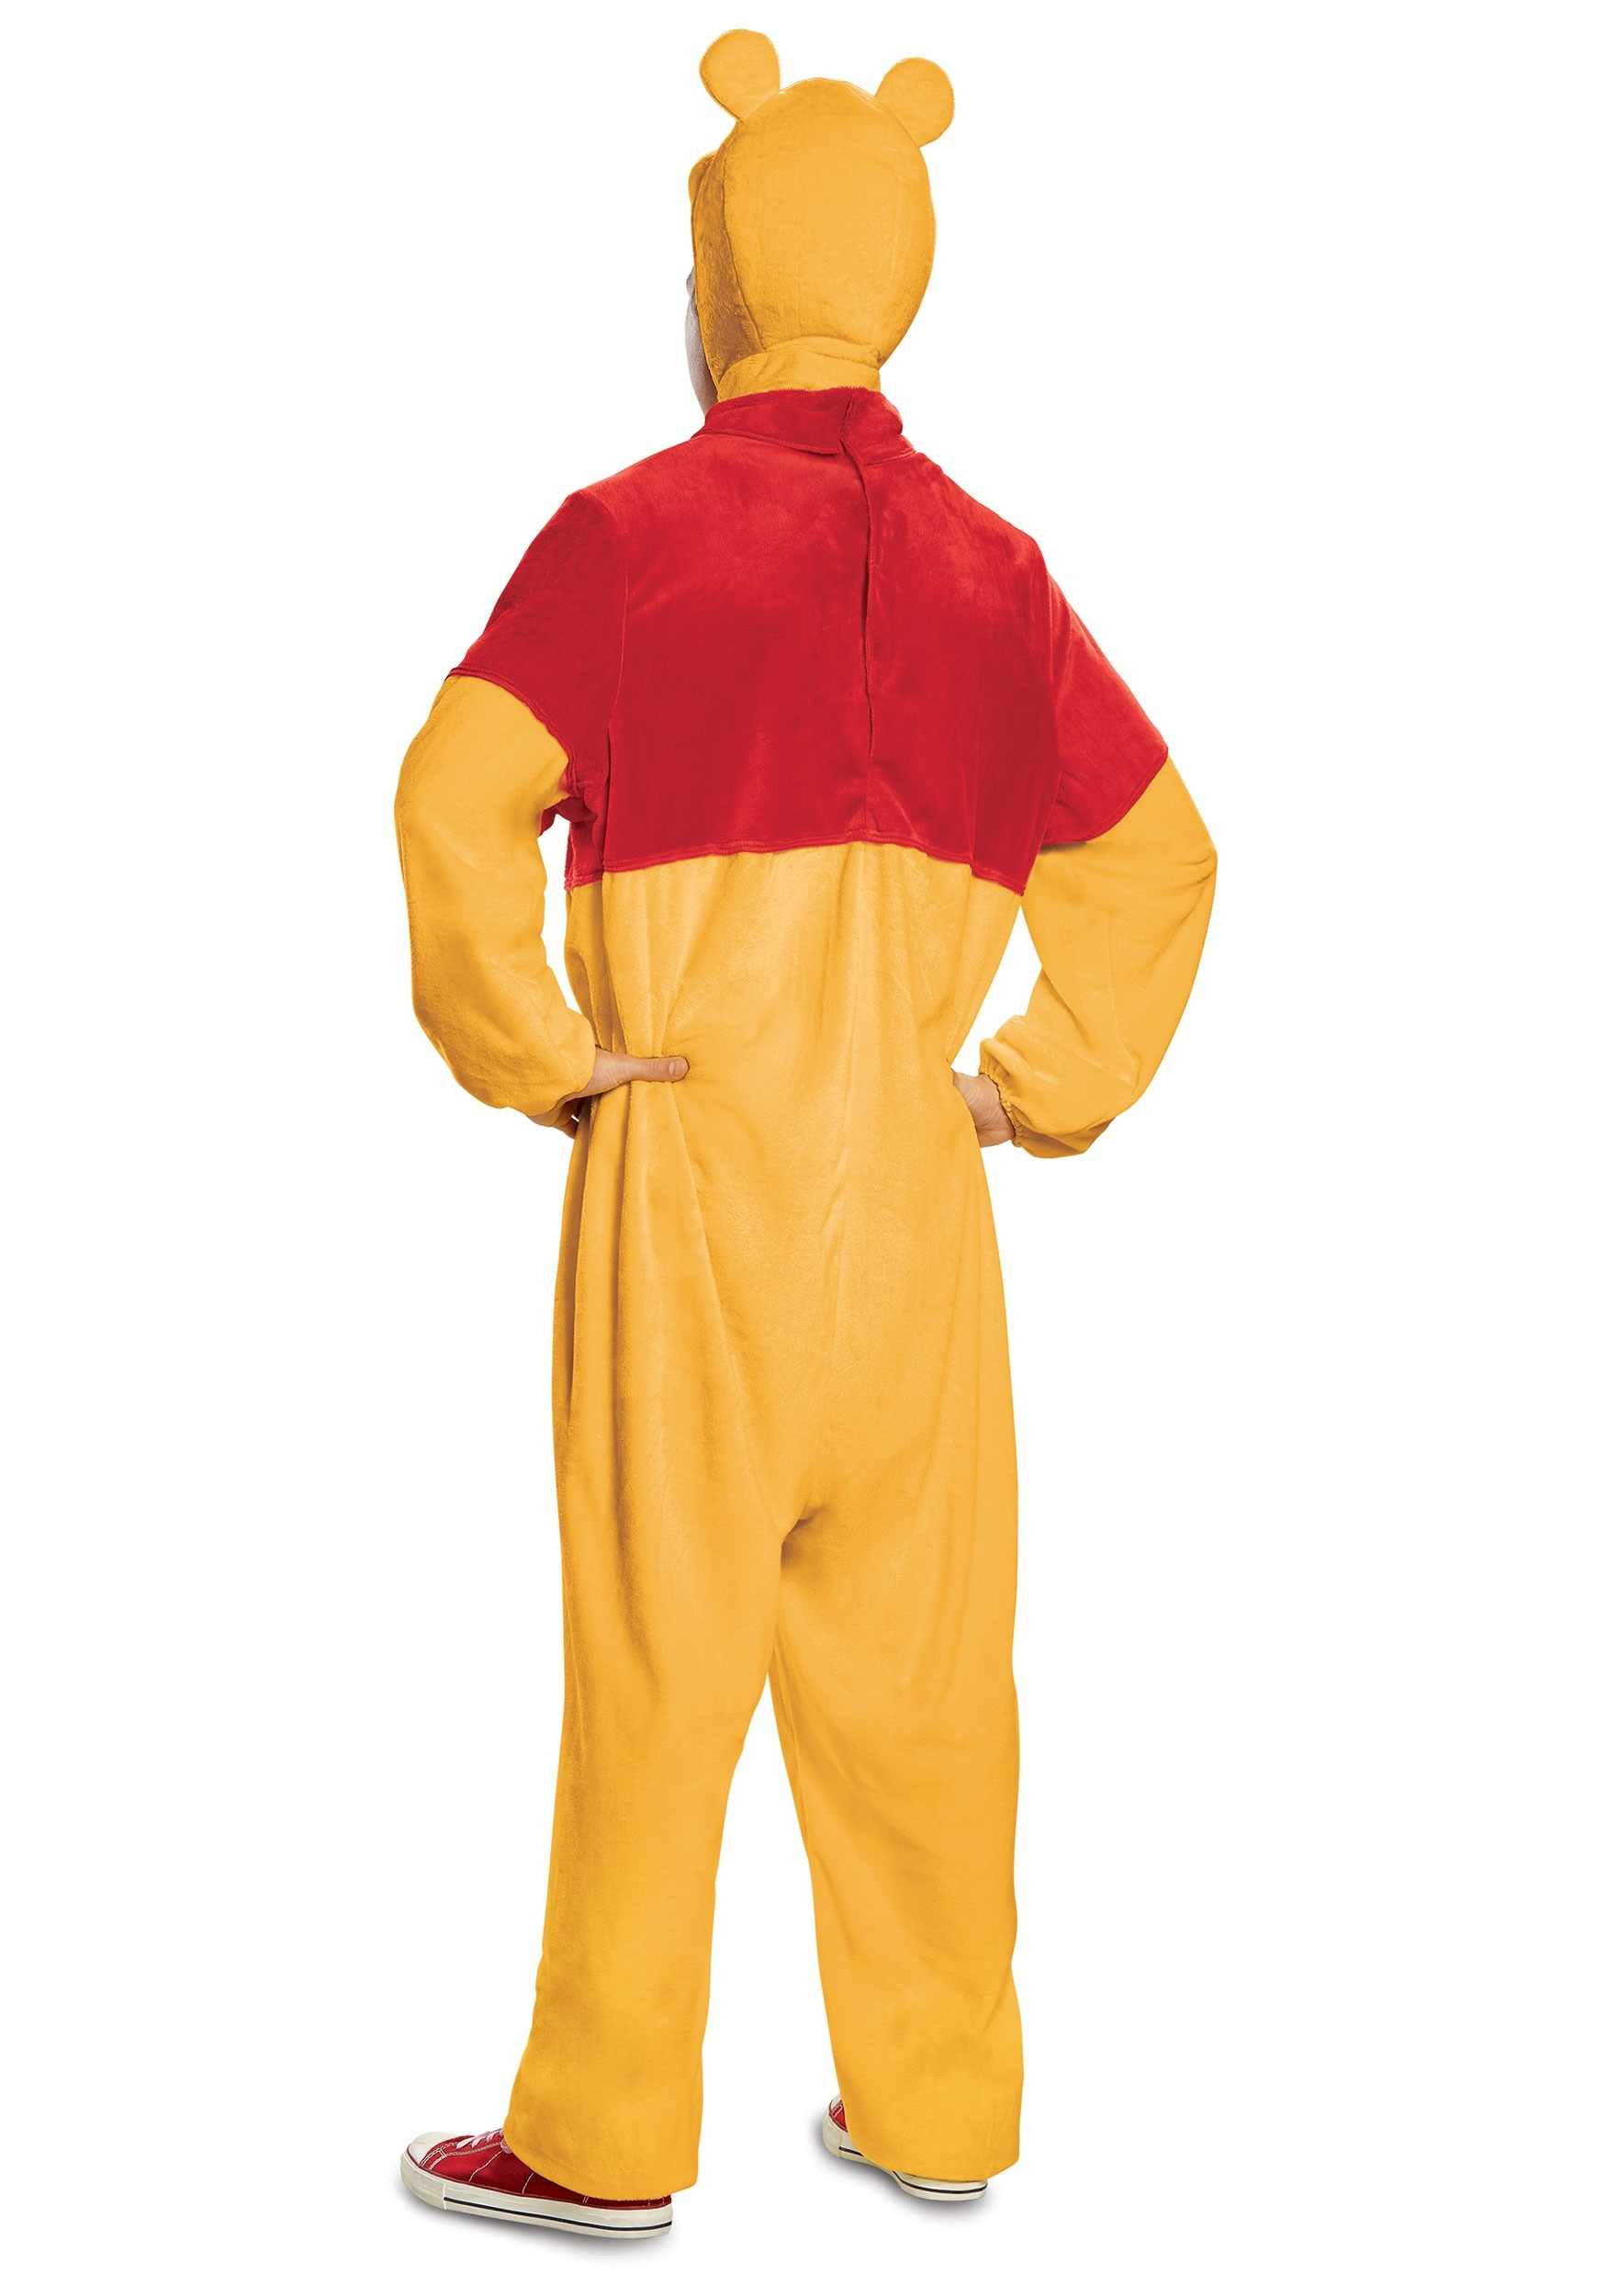 Winnie the Pooh Deluxe Costume for Adults fb1c9727e9